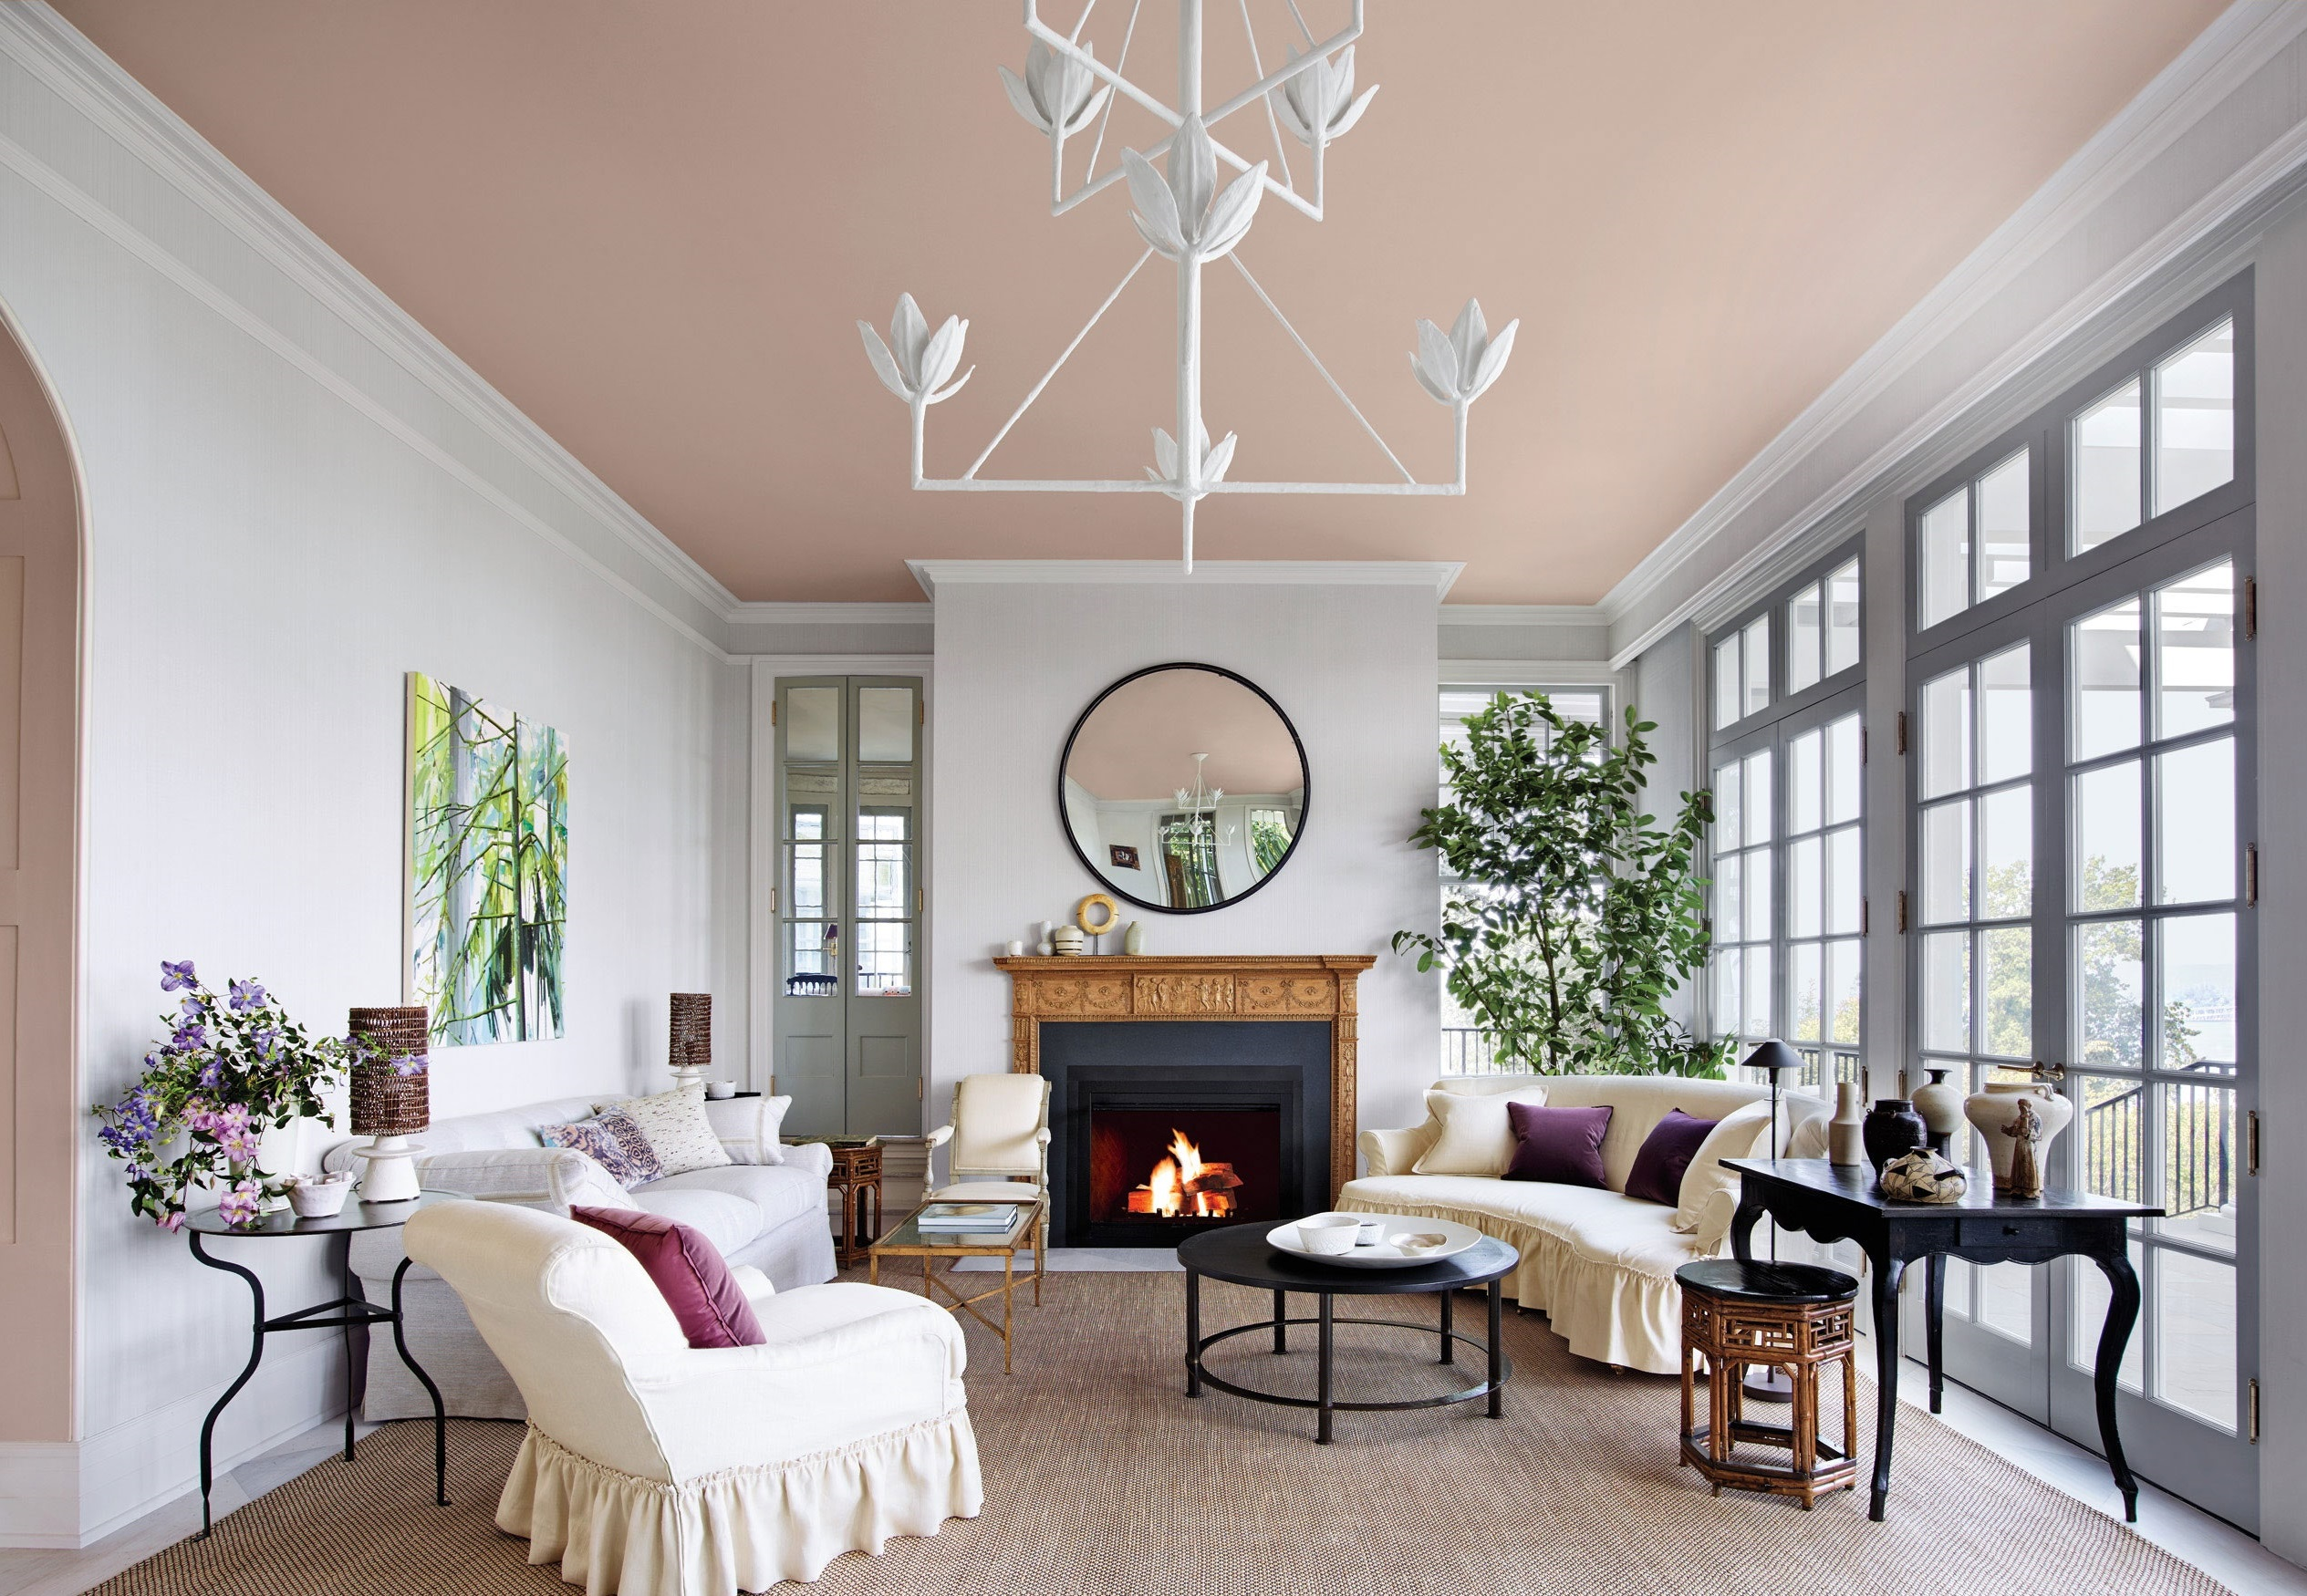 painted-ceiling +70 Unique Ceiling Design Ideas for Your Living Room